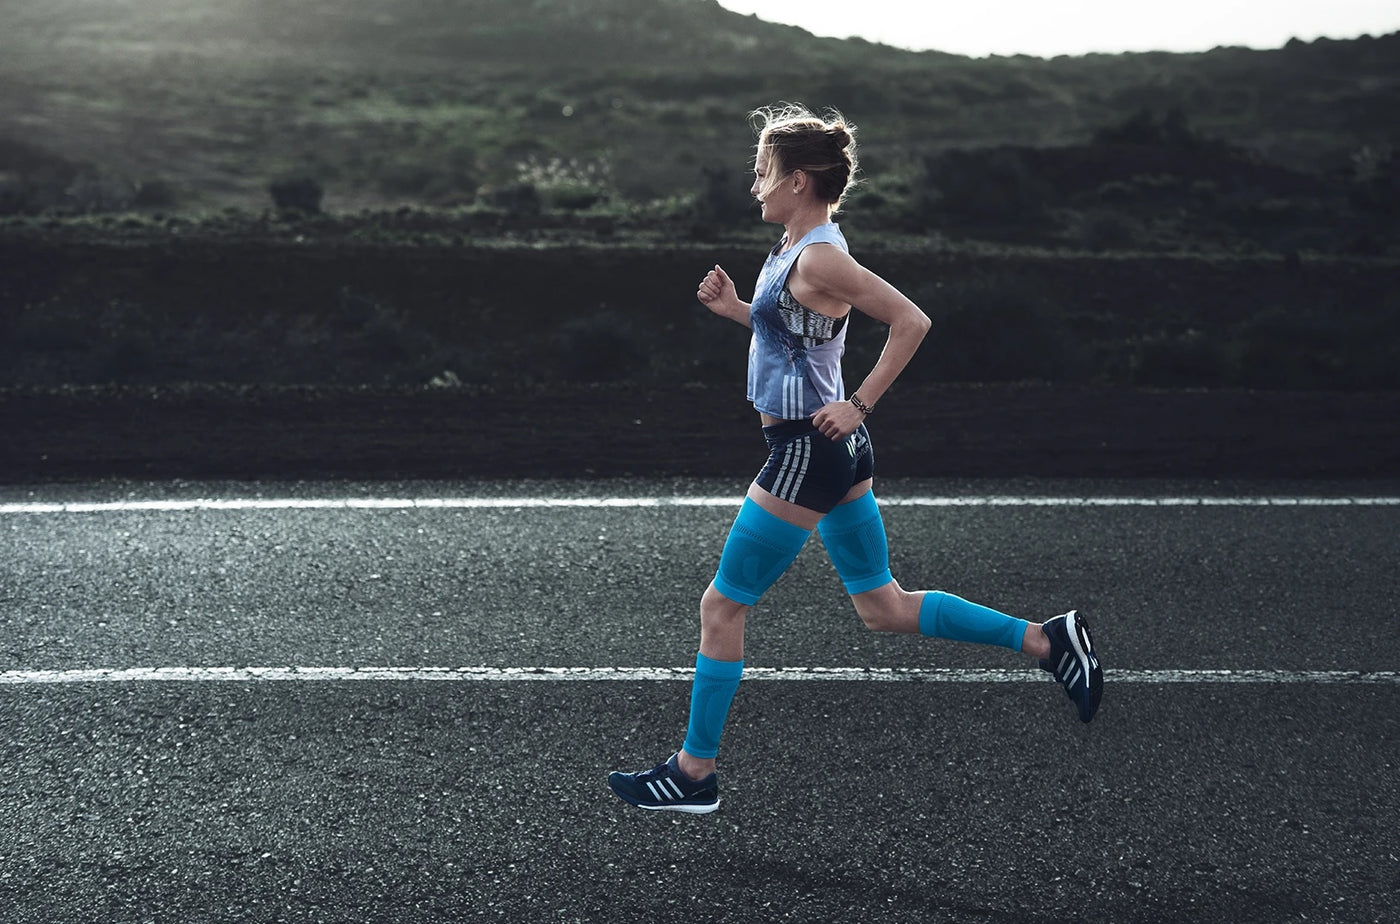 Woman running/jogging on an asphalt road, and wearing blue leg supports made by Bauerfeind.